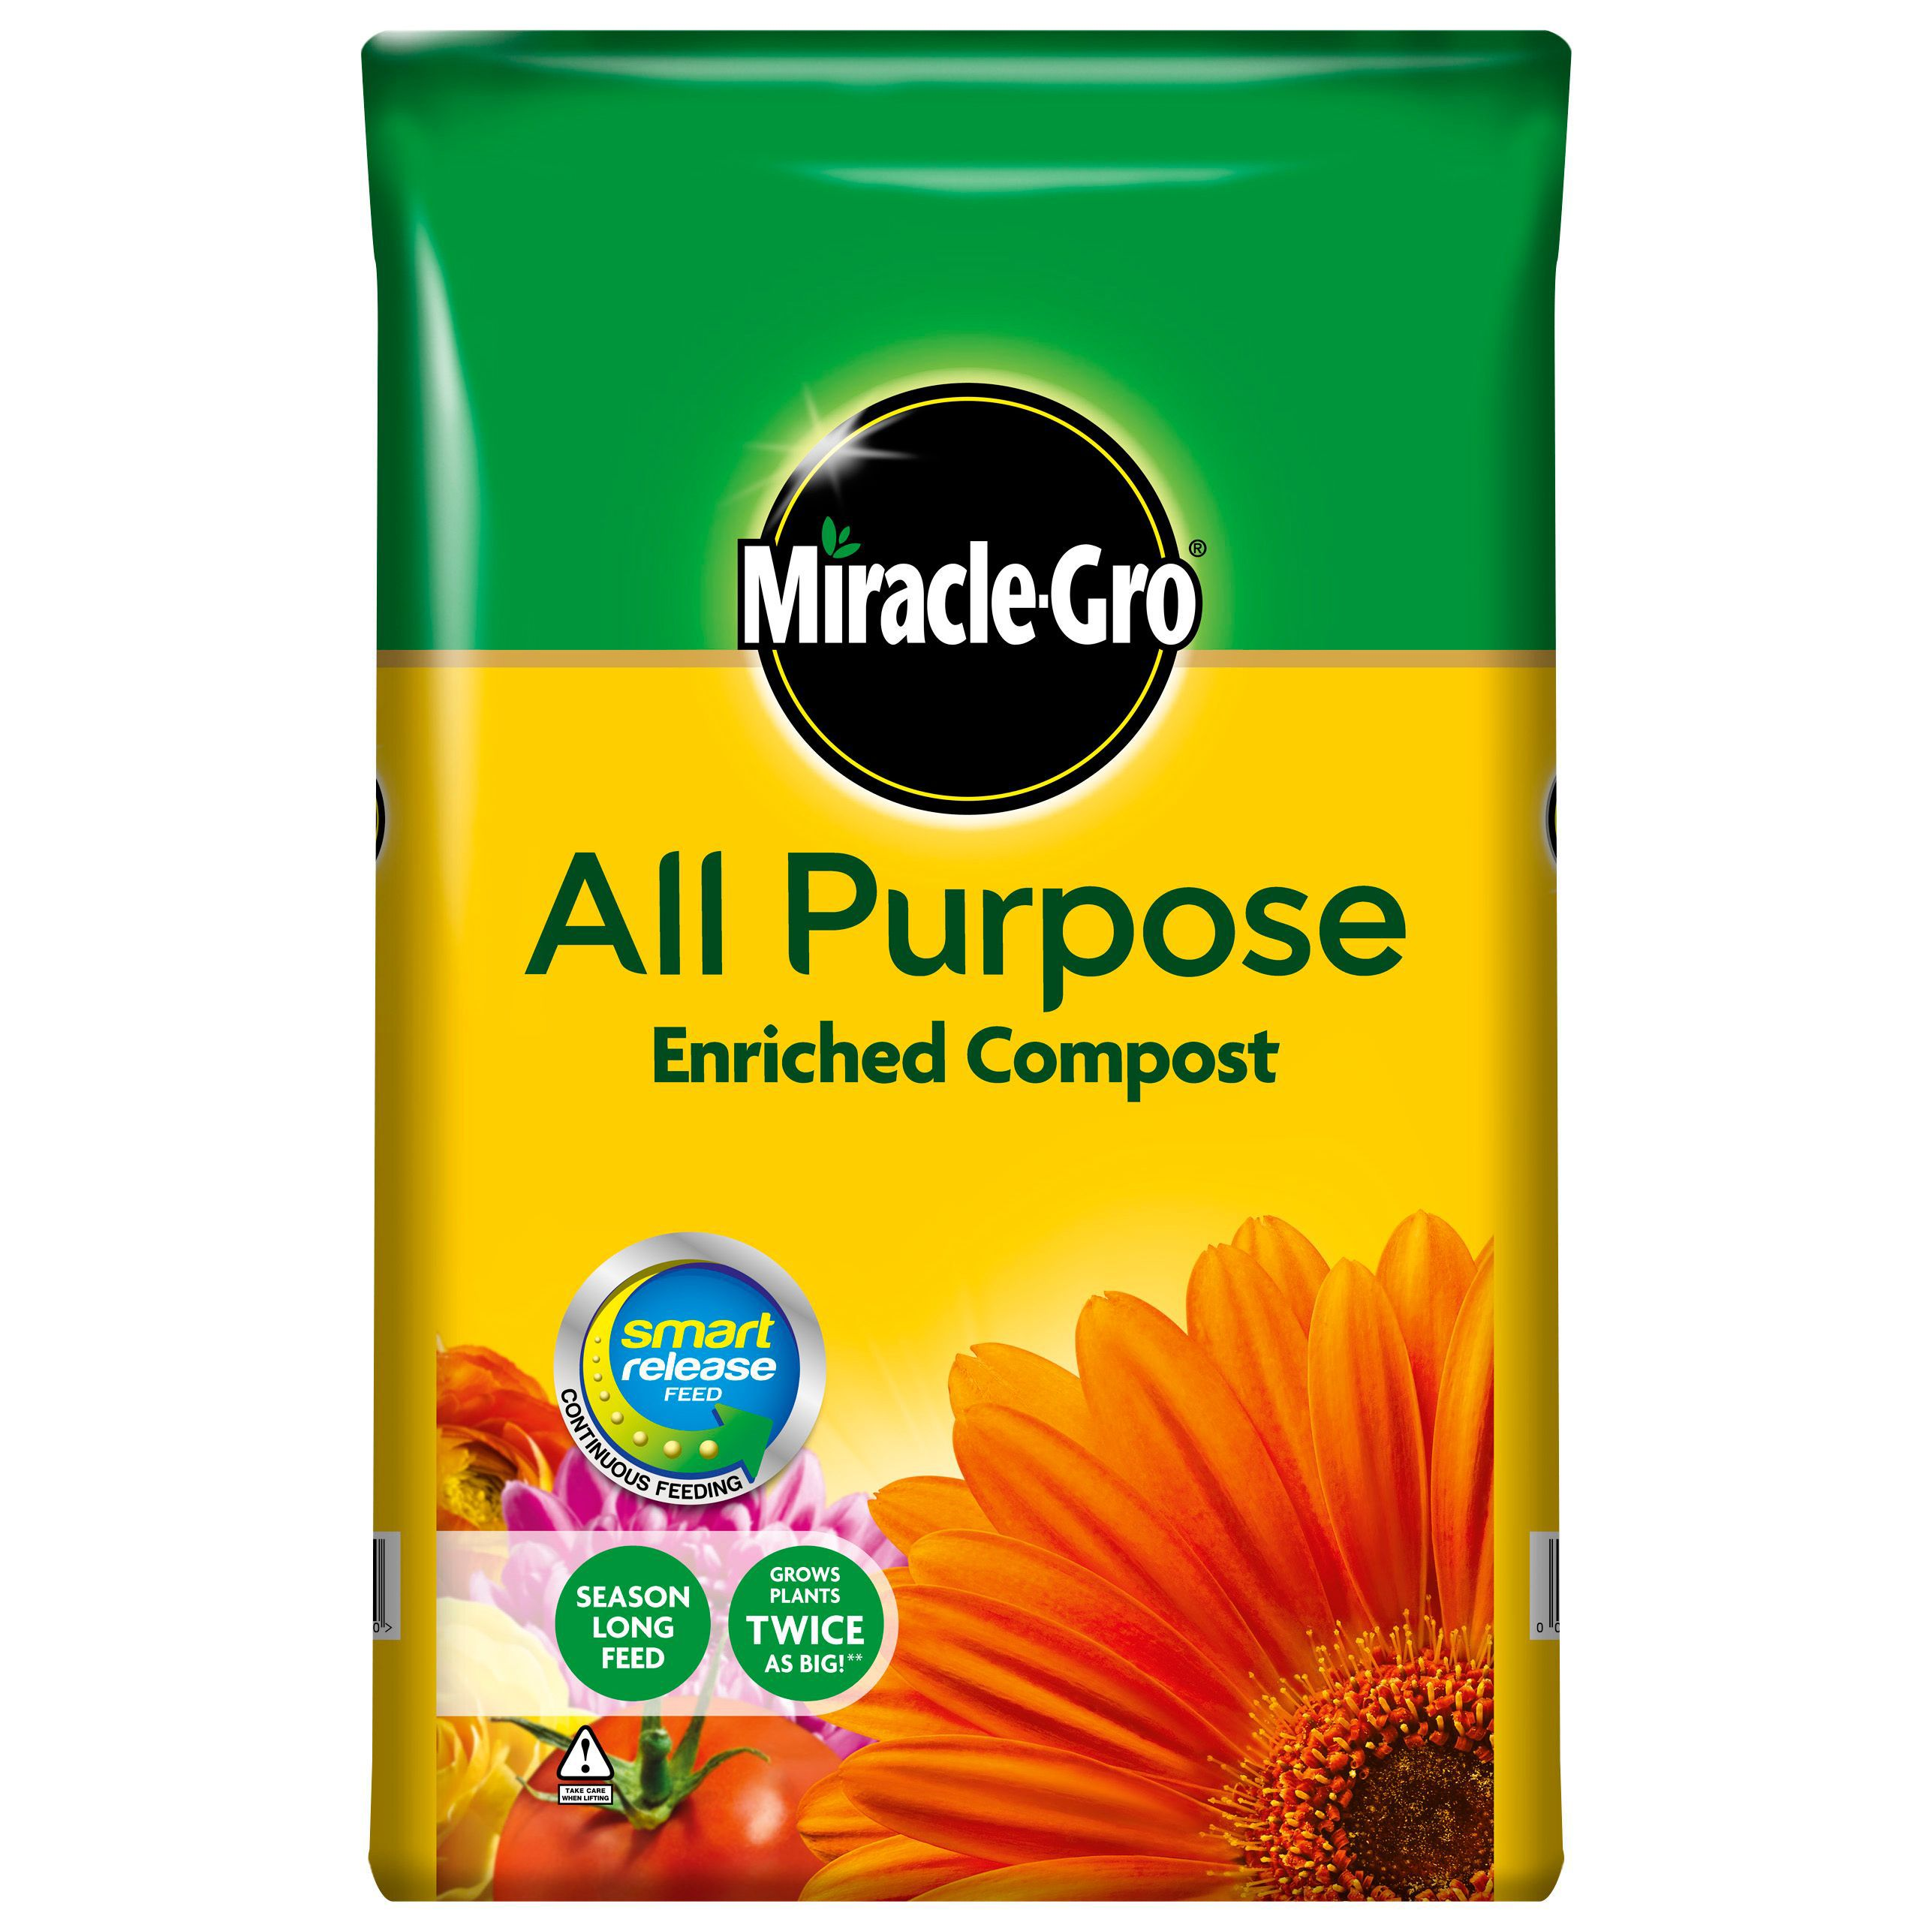 Image for westland multi purpose compost with john innes 50l from - Miracle Gro Multi Purpose Compost 50l W 16 3kg